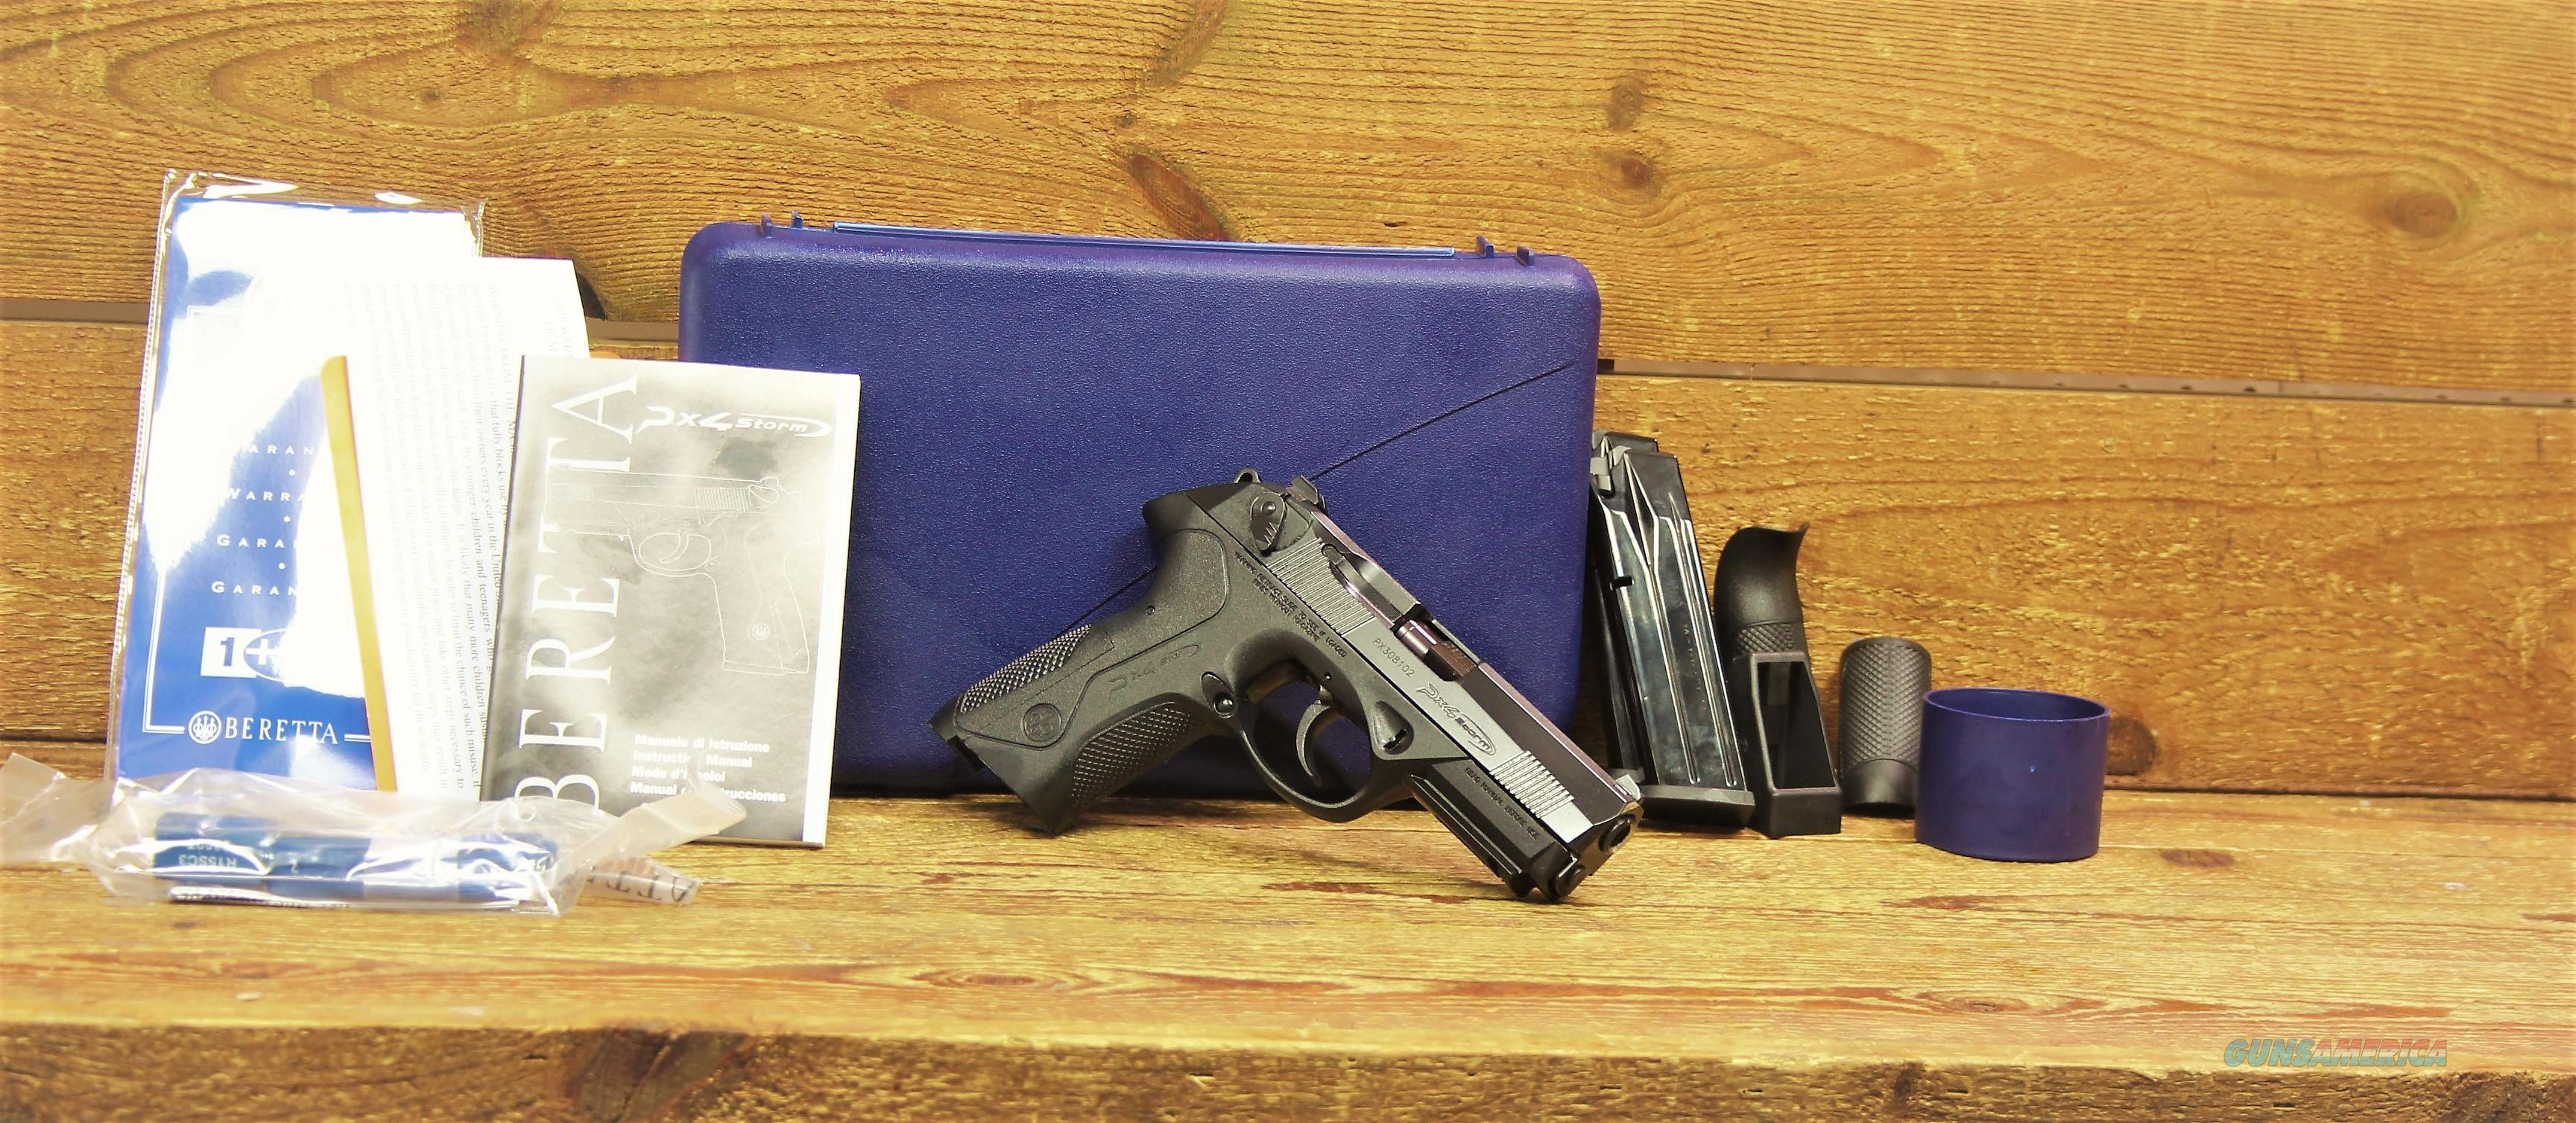 "EASY PAY $53 DOWN Maybe Save a life by carrying Concealed and Carry know your state Laws Beretta PX4 Storm Handgun stainless steel barrel Polymer Black frame grip weight 27.3 oz  9mm Luger 4"" Barrel 17 Rounds JXF9F21  Guns > Pistols > Benelli Pistols"